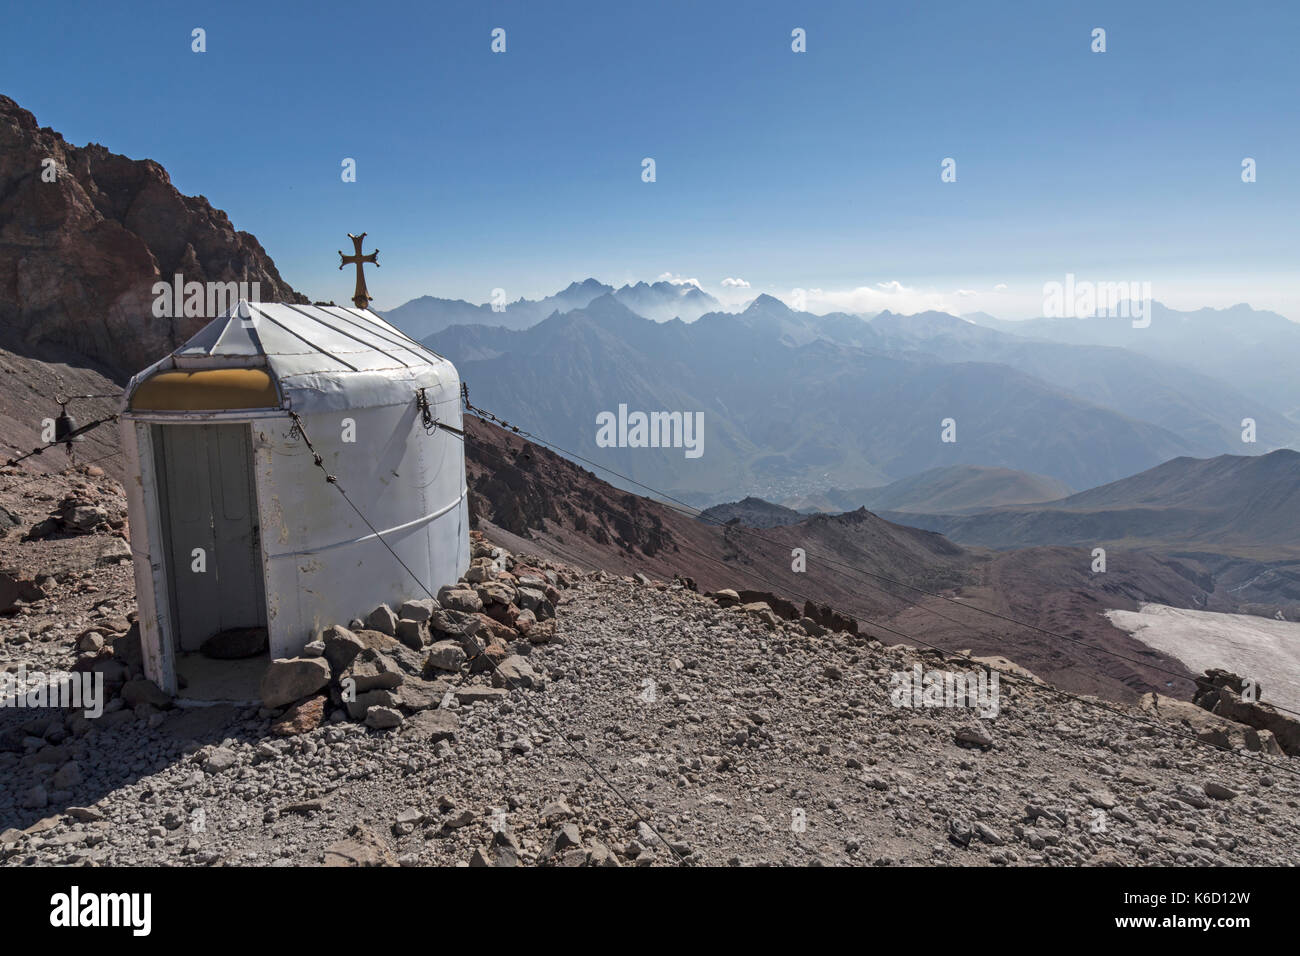 Small Metal Church Sits On A Peak Below Mount Kazbek In Georgia Used As A Place Of Worship Or A Shelter For Climbers And Walkers